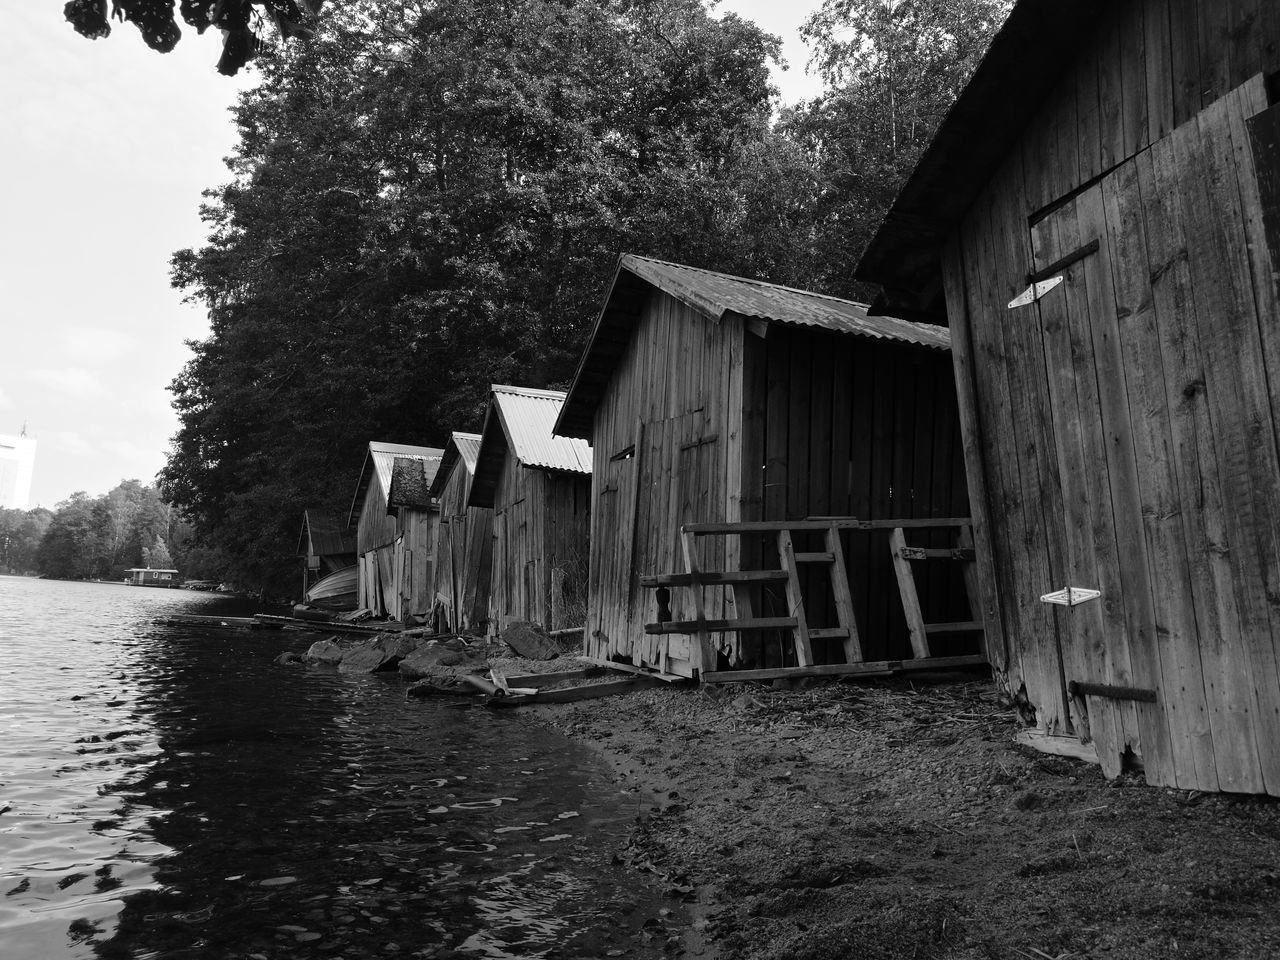 boat sheds in Finland Purist No Edit No Filter HuaweiP9 Smartphone Photography Black & White Black And White Photography Walking In The Forest Noedit Nofilter Finland Lake Boathouse Row Monochrome Photography